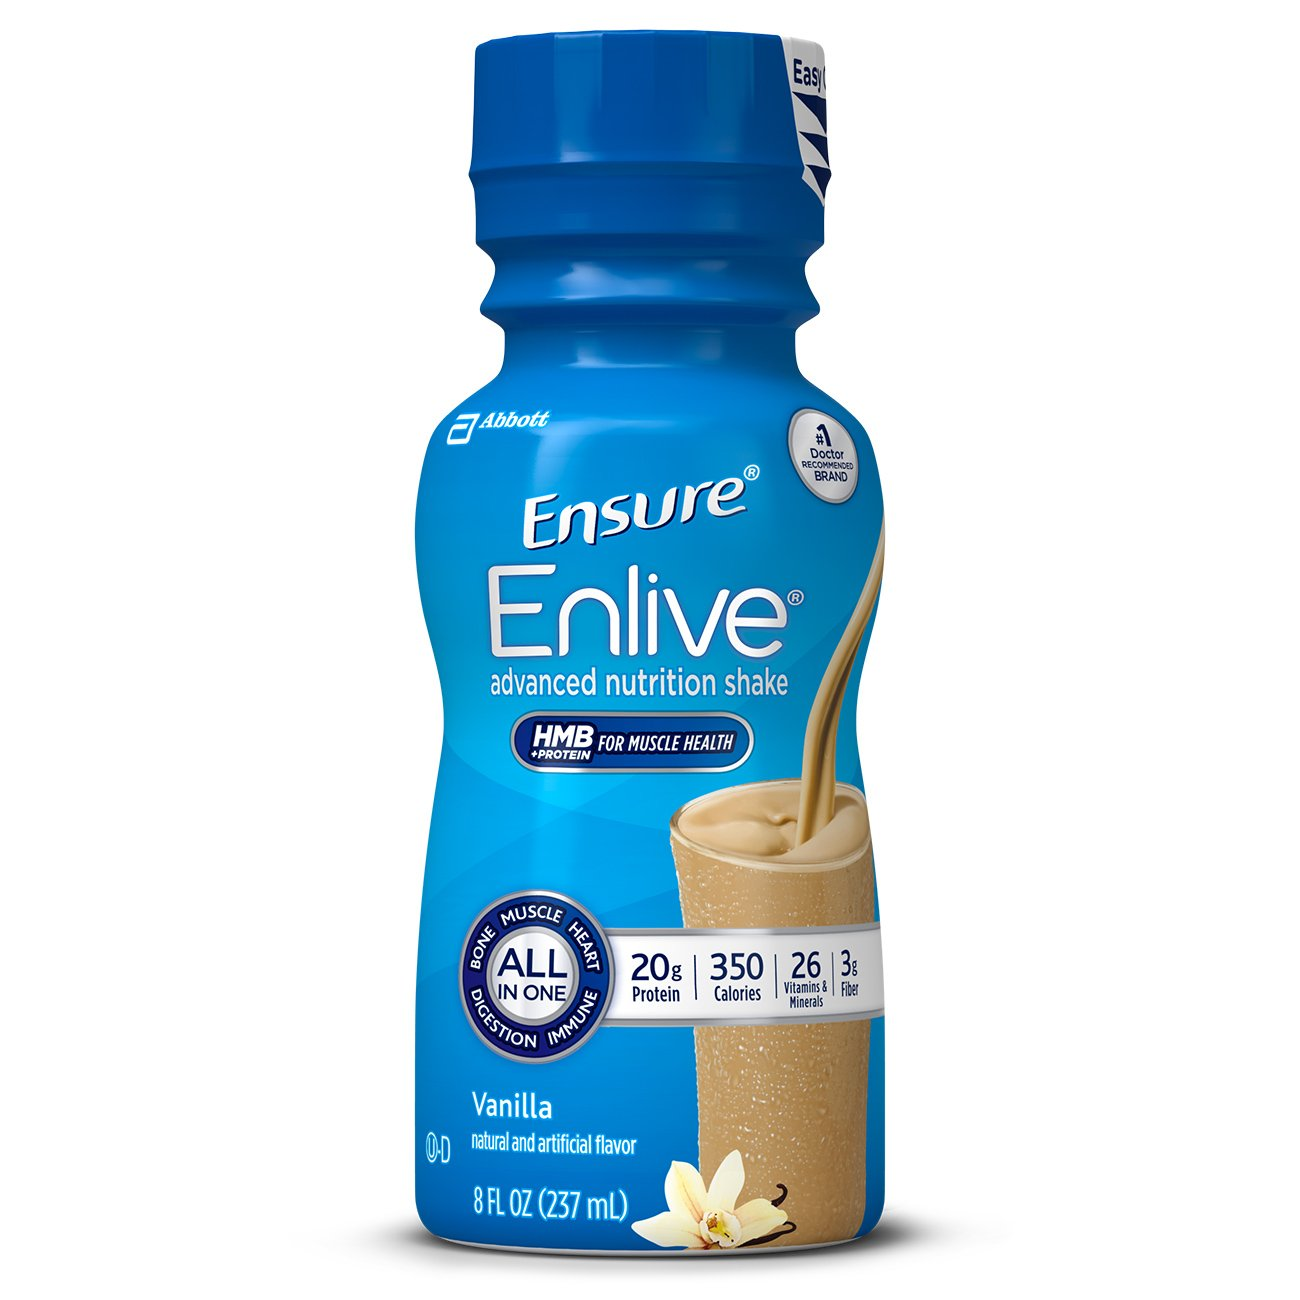 Ensure Enlive Advanced Nutrition Shake with 20 grams of protein, Meal Replacement Shakes, Vanilla, 8 fl oz, 16 count